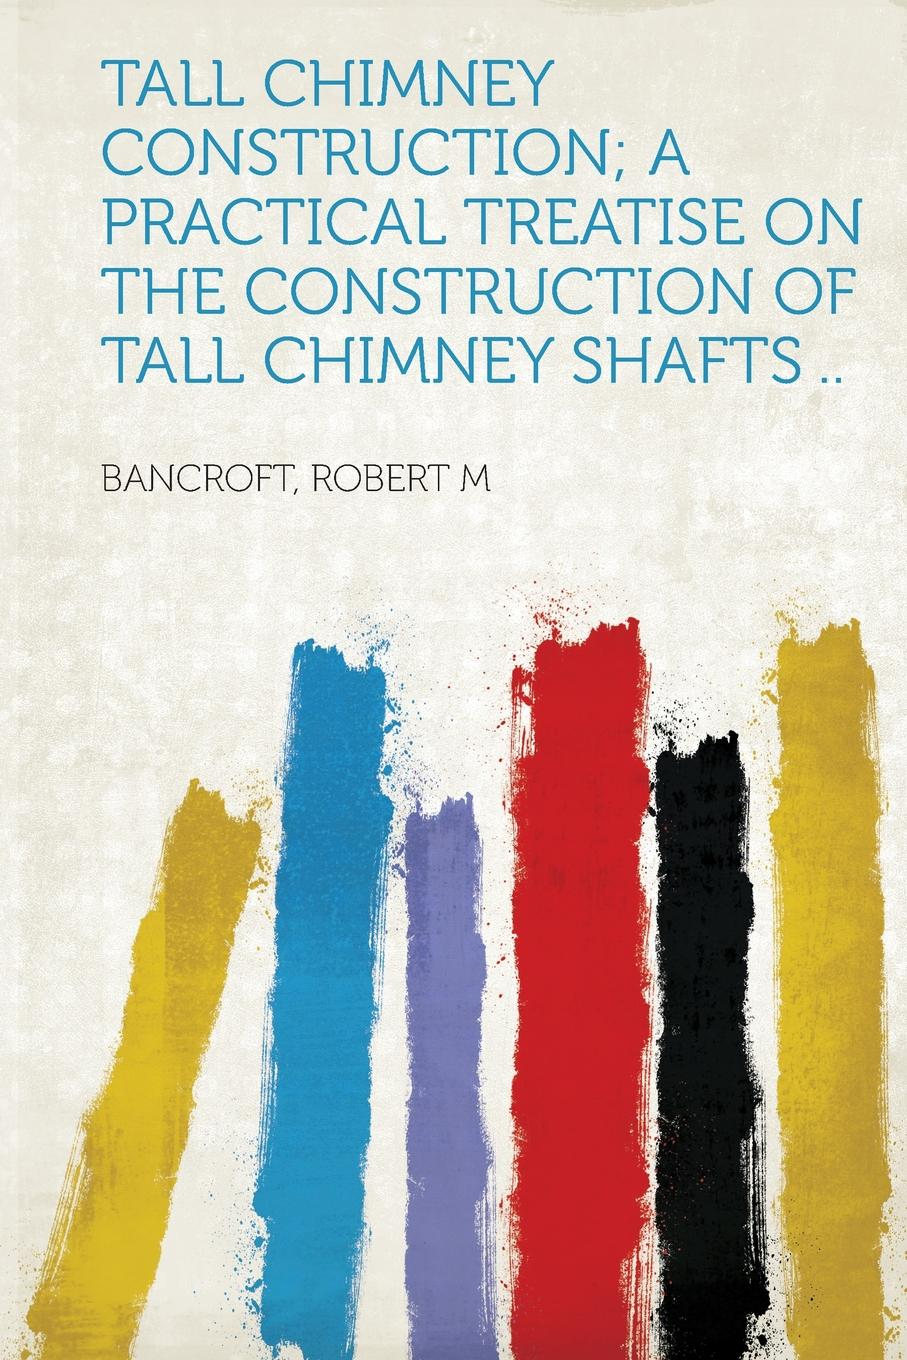 Bancroft Robert M Tall Chimney Construction; a Practical Treatise on the Construction of Tall Chimney Shafts .. malcolm kemp extreme events robust portfolio construction in the presence of fat tails isbn 9780470976791